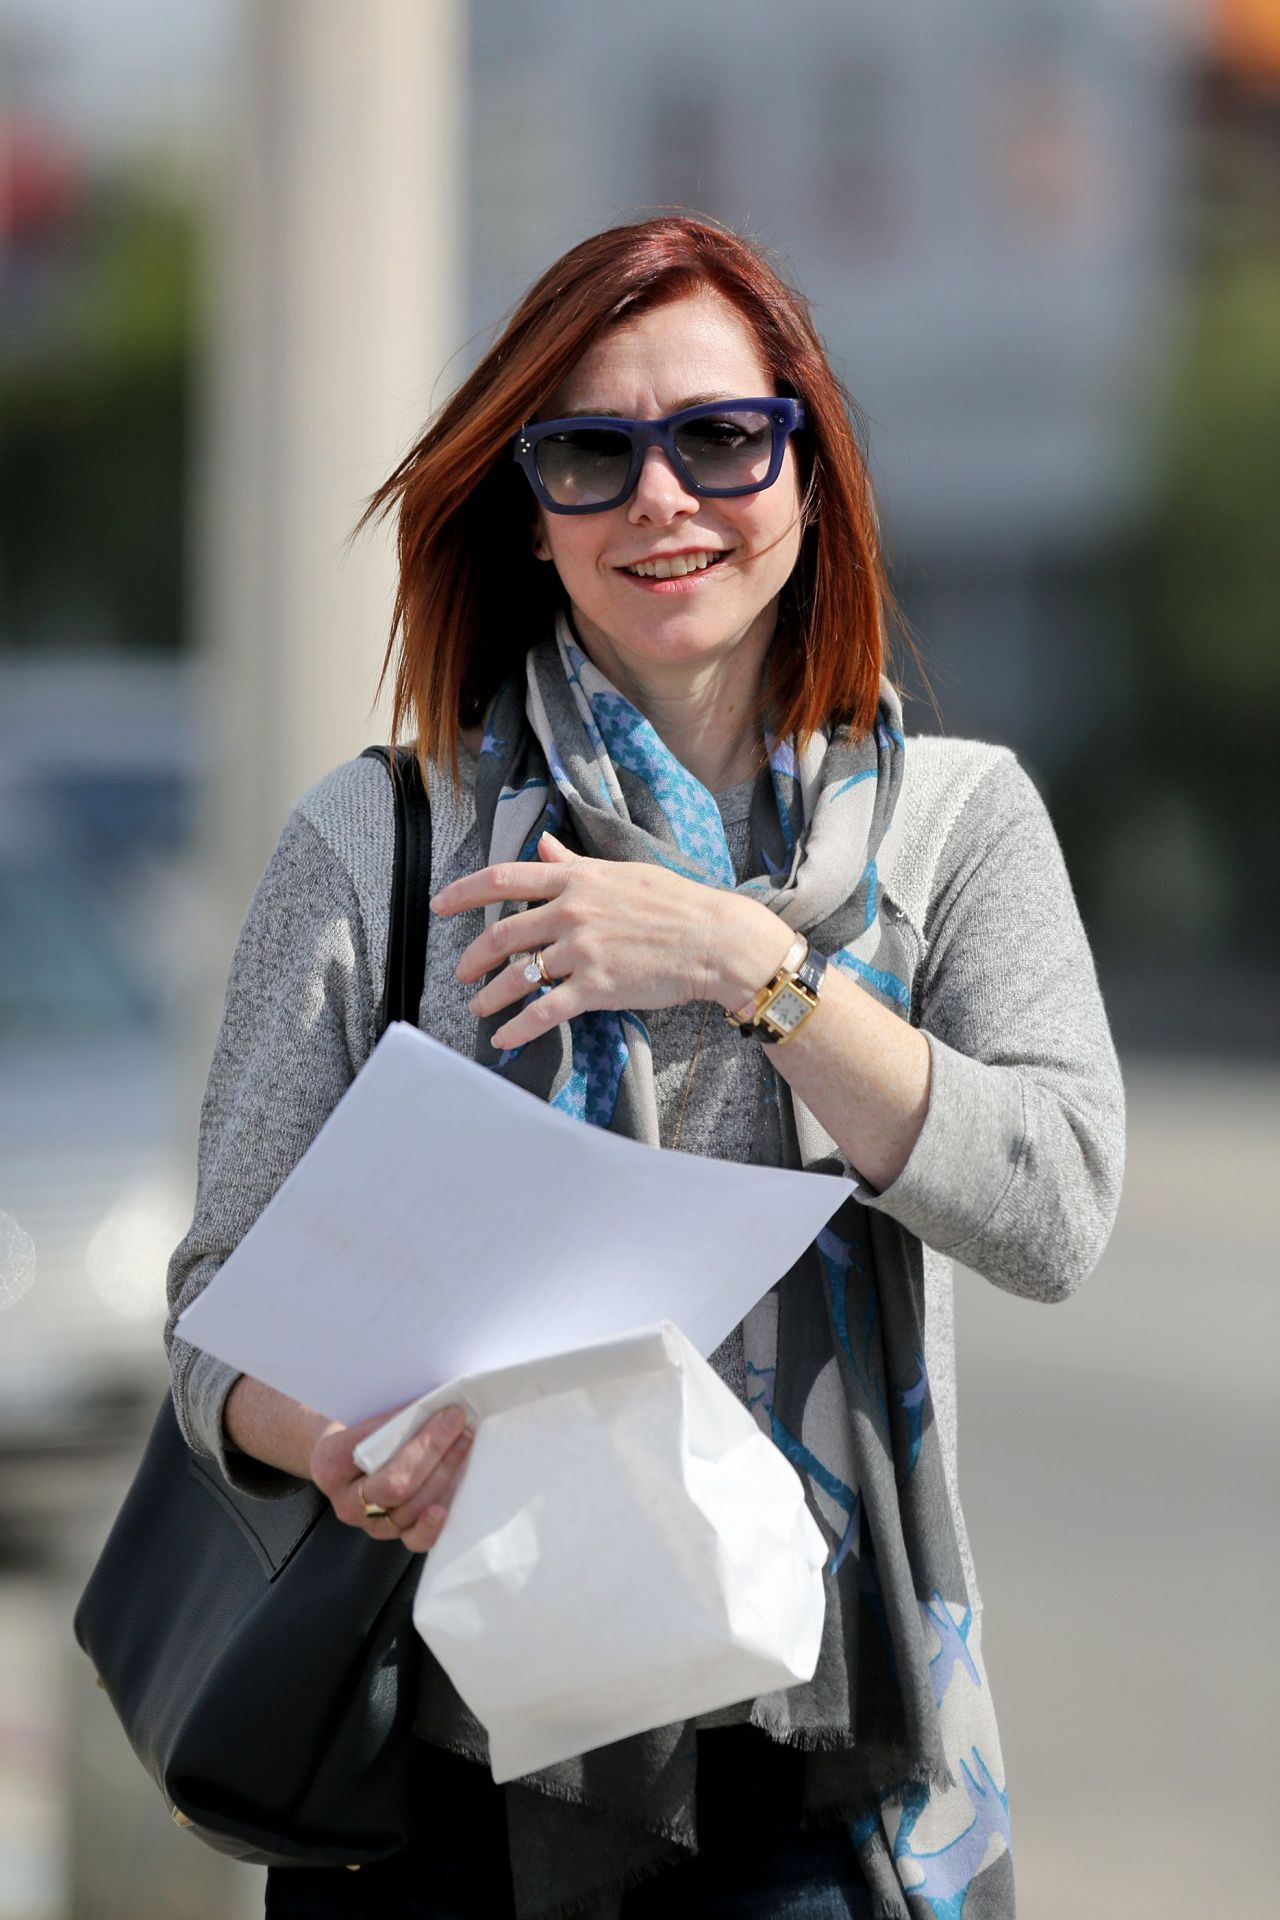 Alyson Hannigan With Her New Hairstyle March 2014